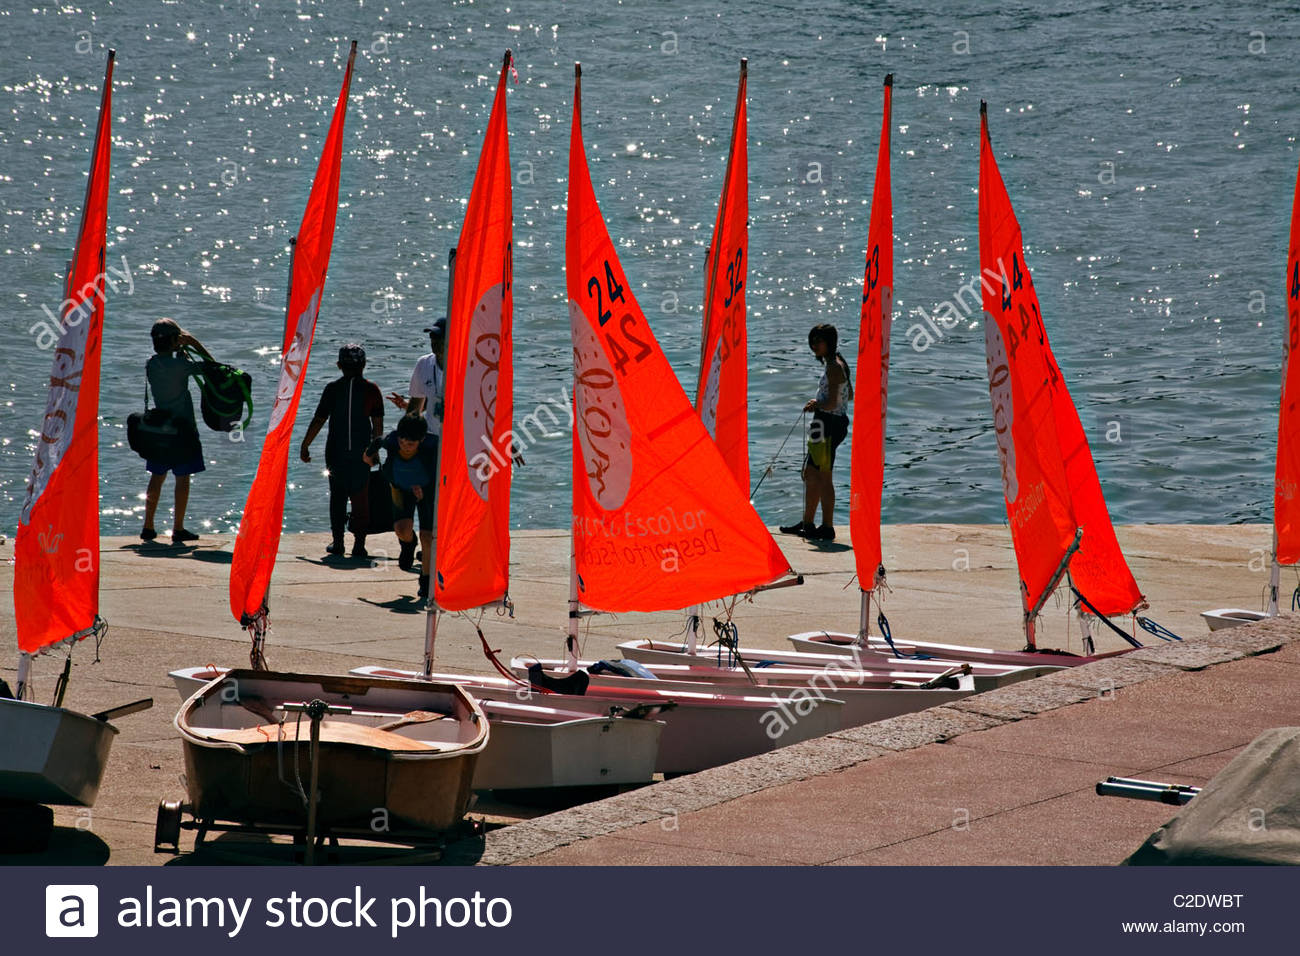 Optimist sailing boats, Cascais, Portugal - Stock Image